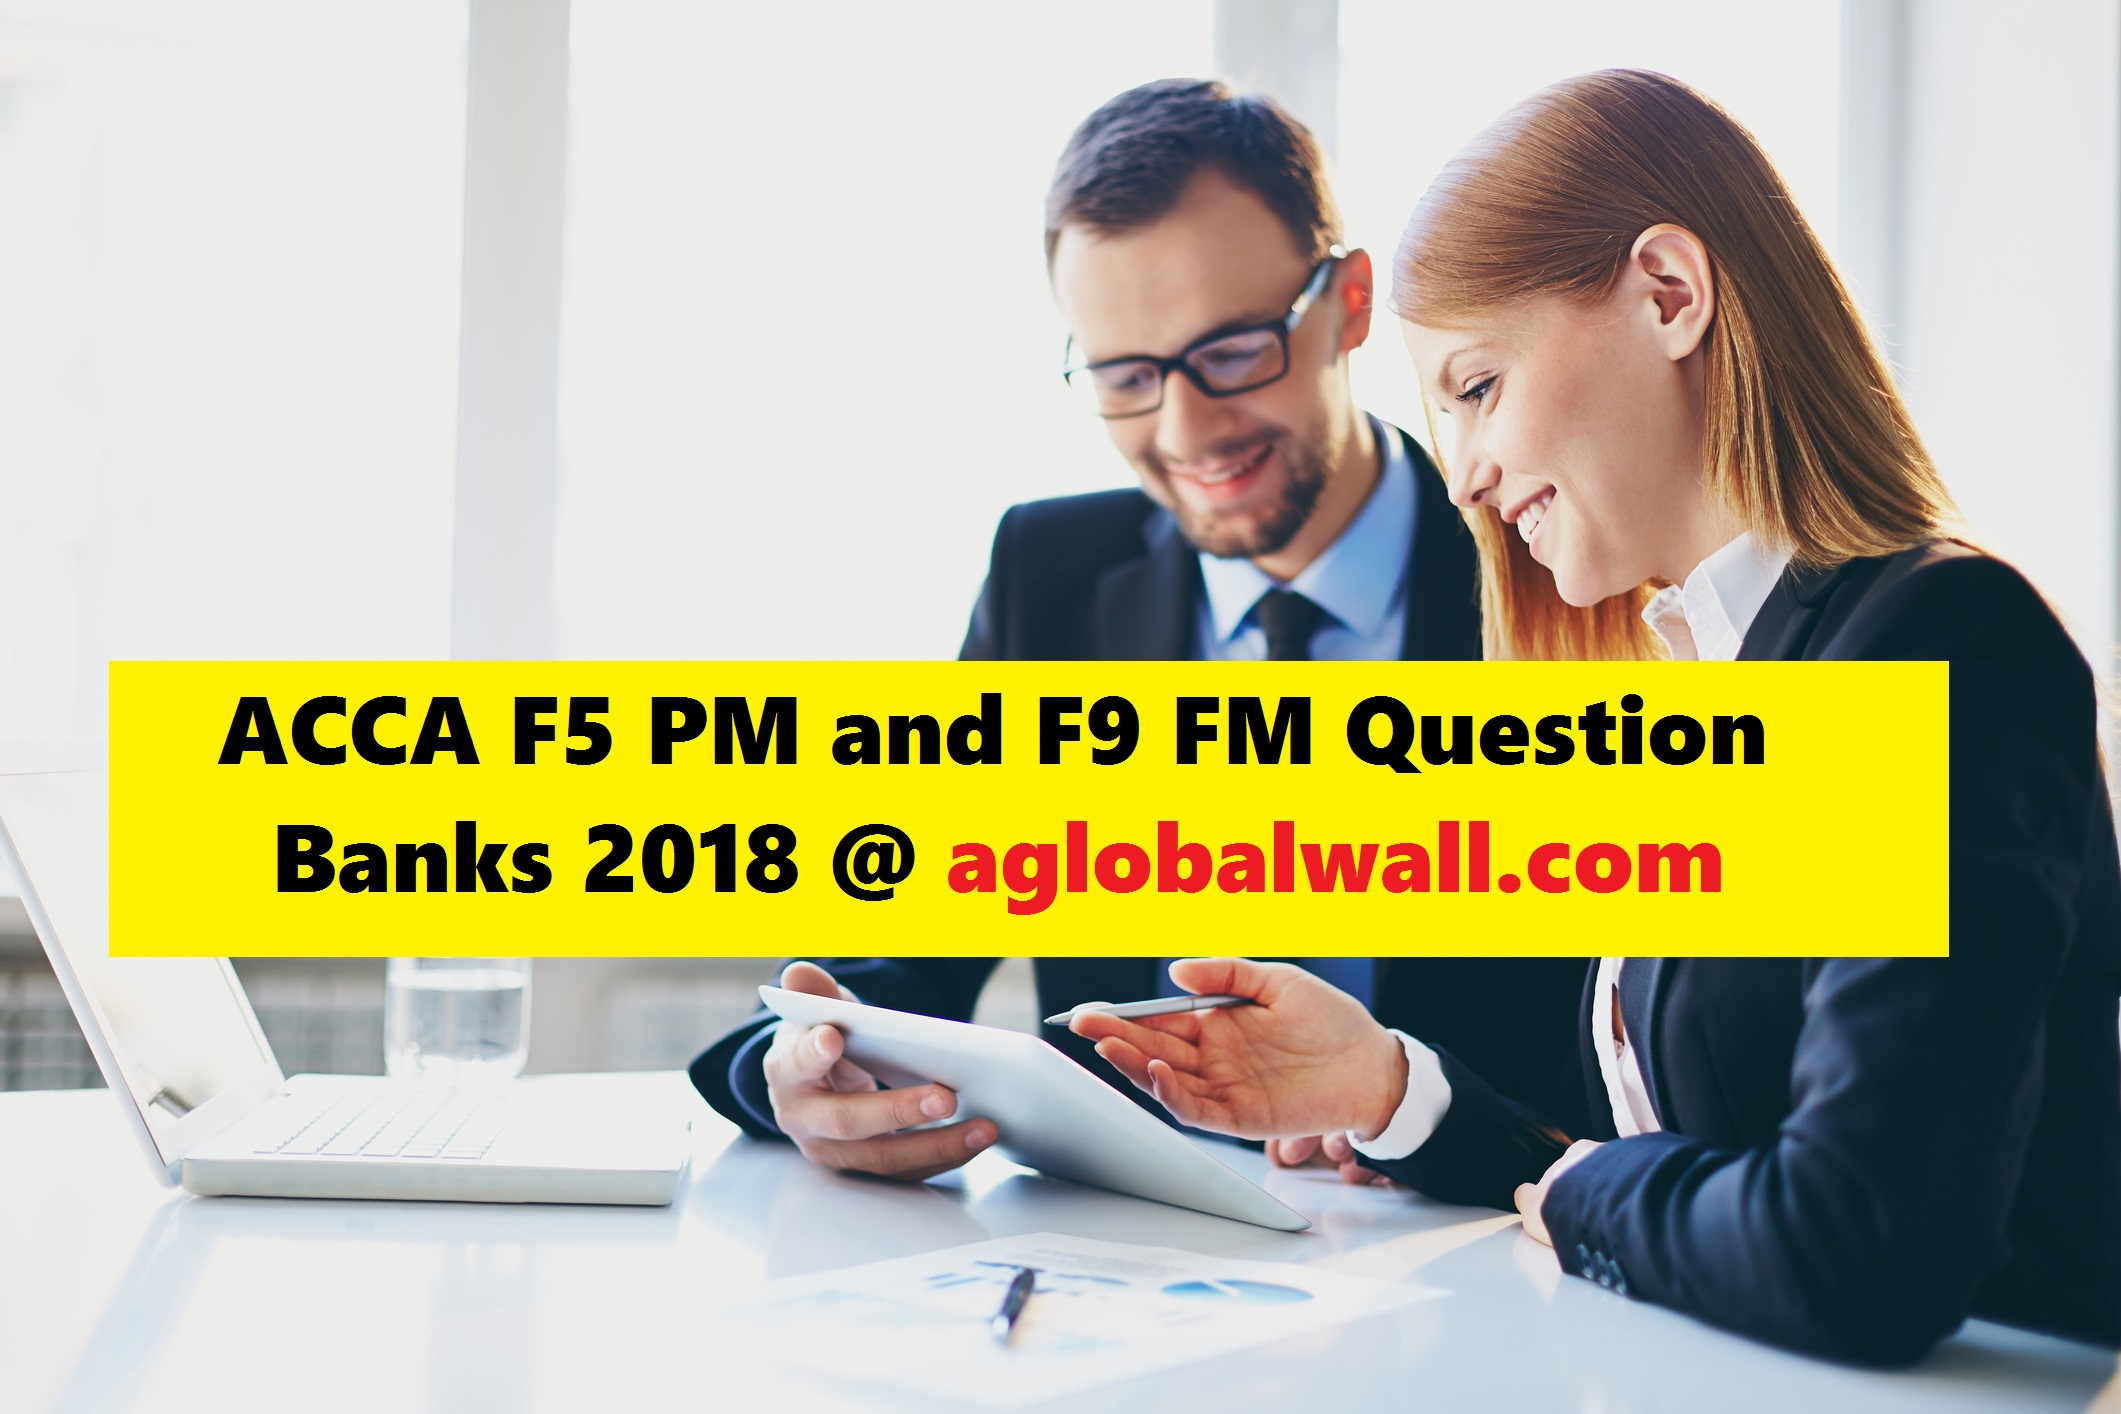 ACCA F5 PM and F9 FM Question Banks 2018